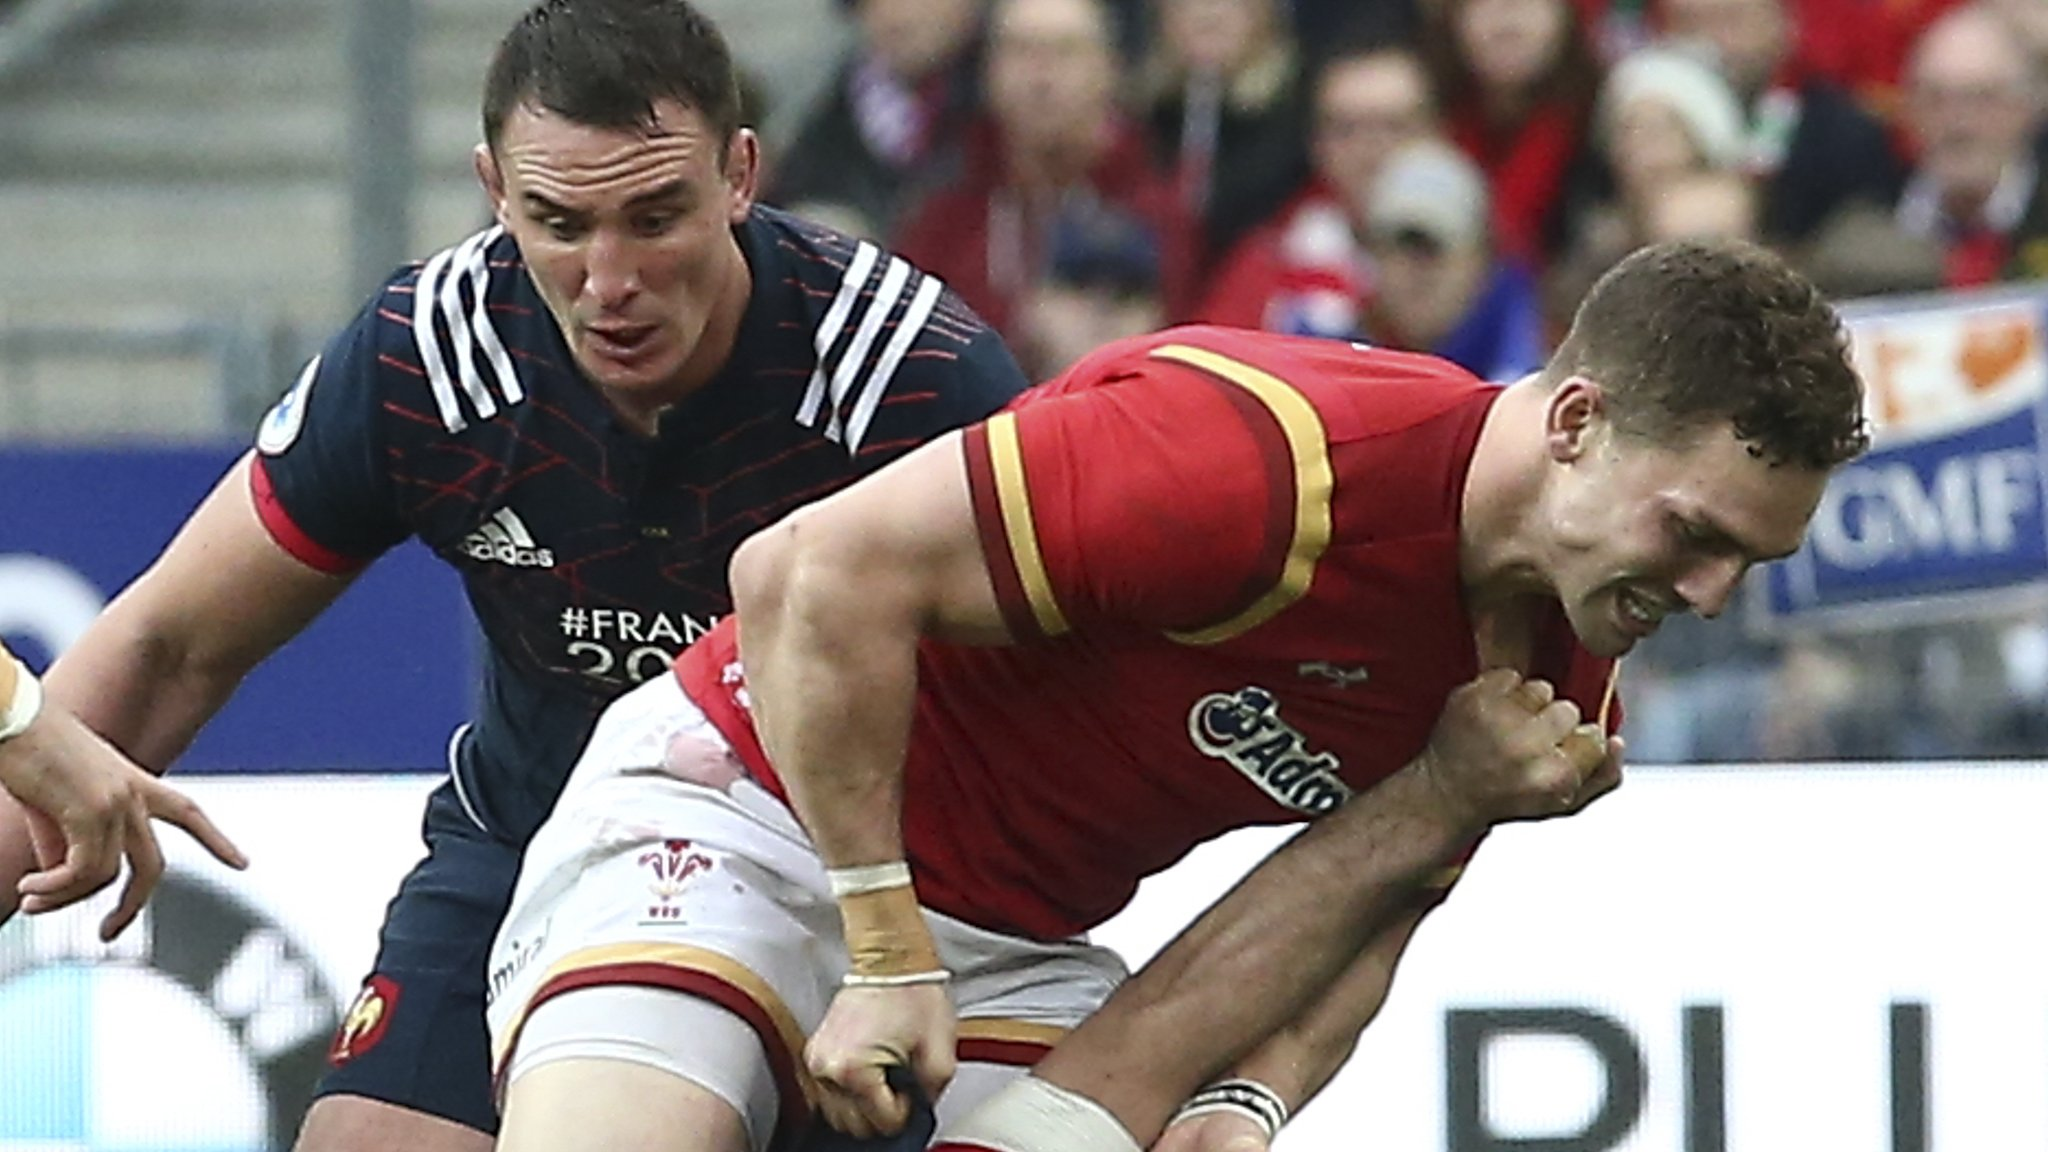 George North: Wales wing 'disappointed' at no action over alleged bite